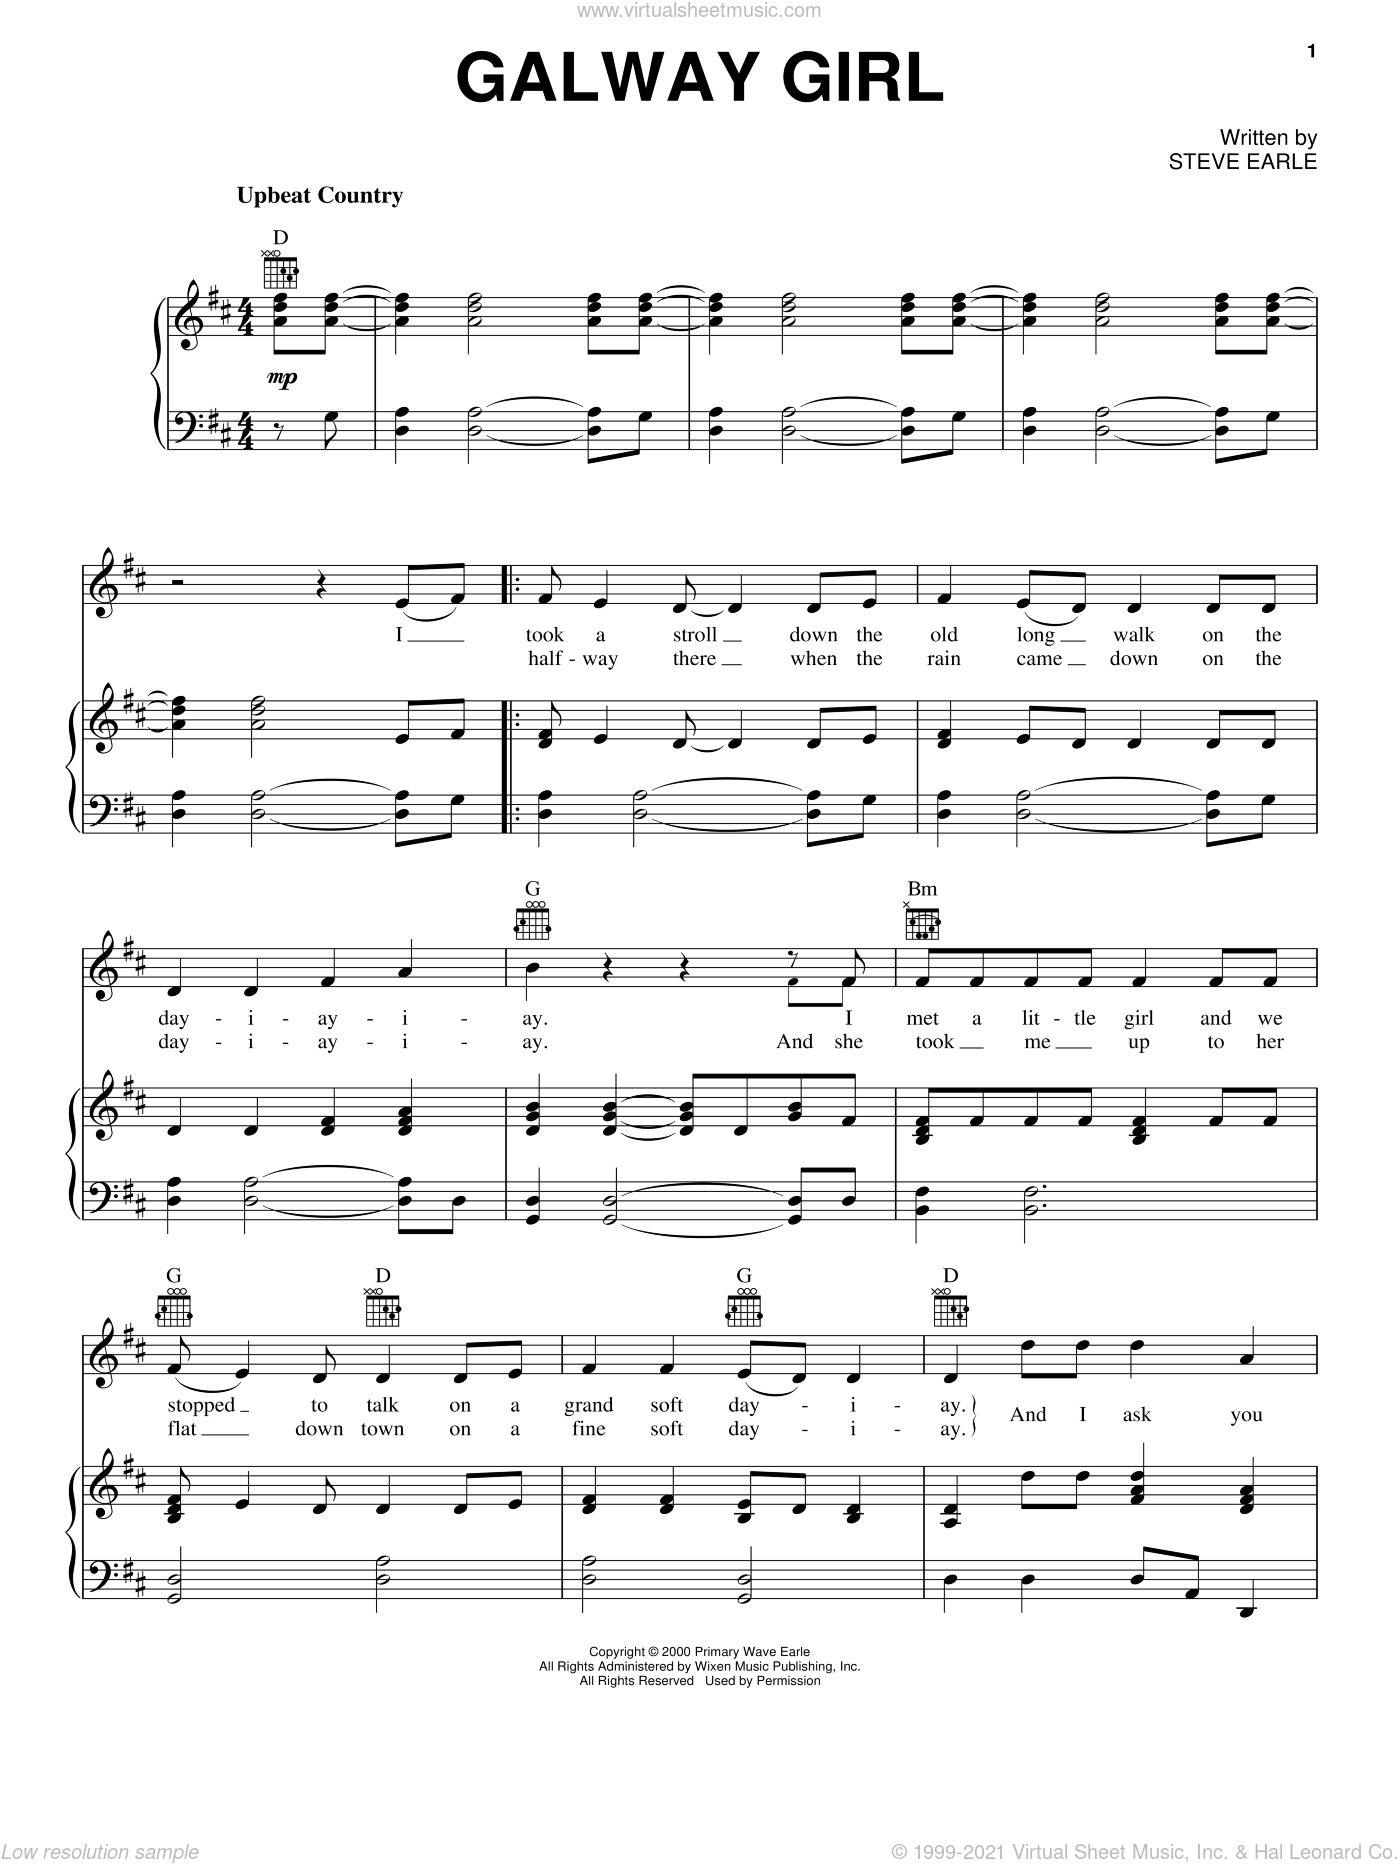 Galway Girl sheet music for voice, piano or guitar by Steve Earle